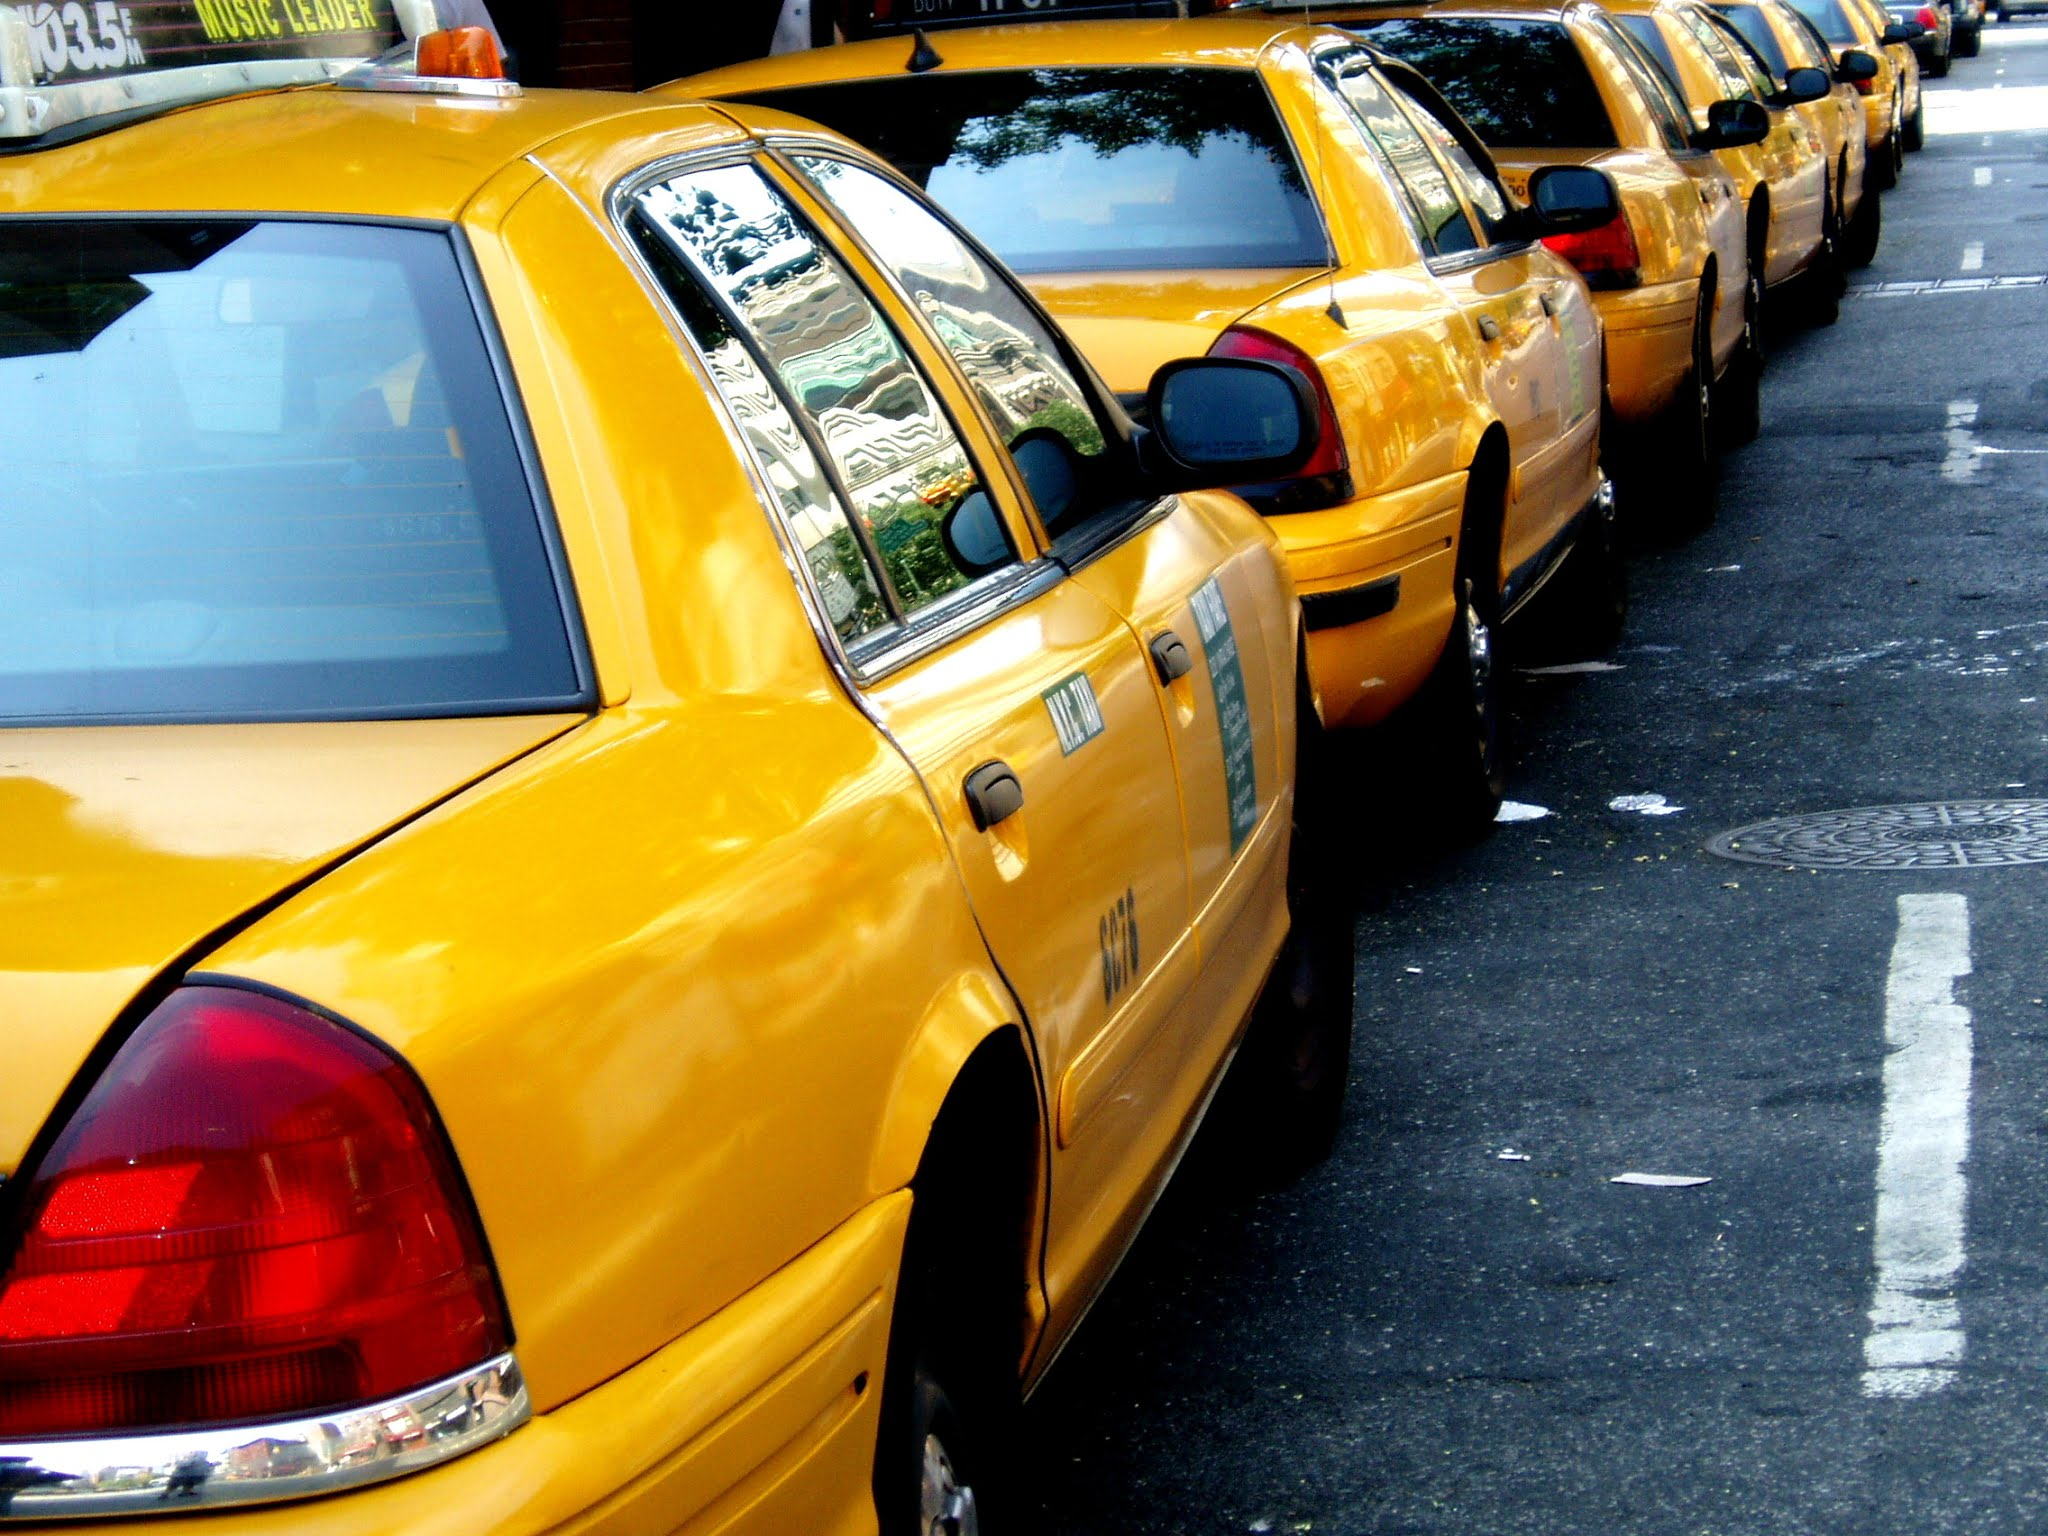 Taxis Around The World 🌏 - NYC Yellow Cabs - Dublin's Taxi App